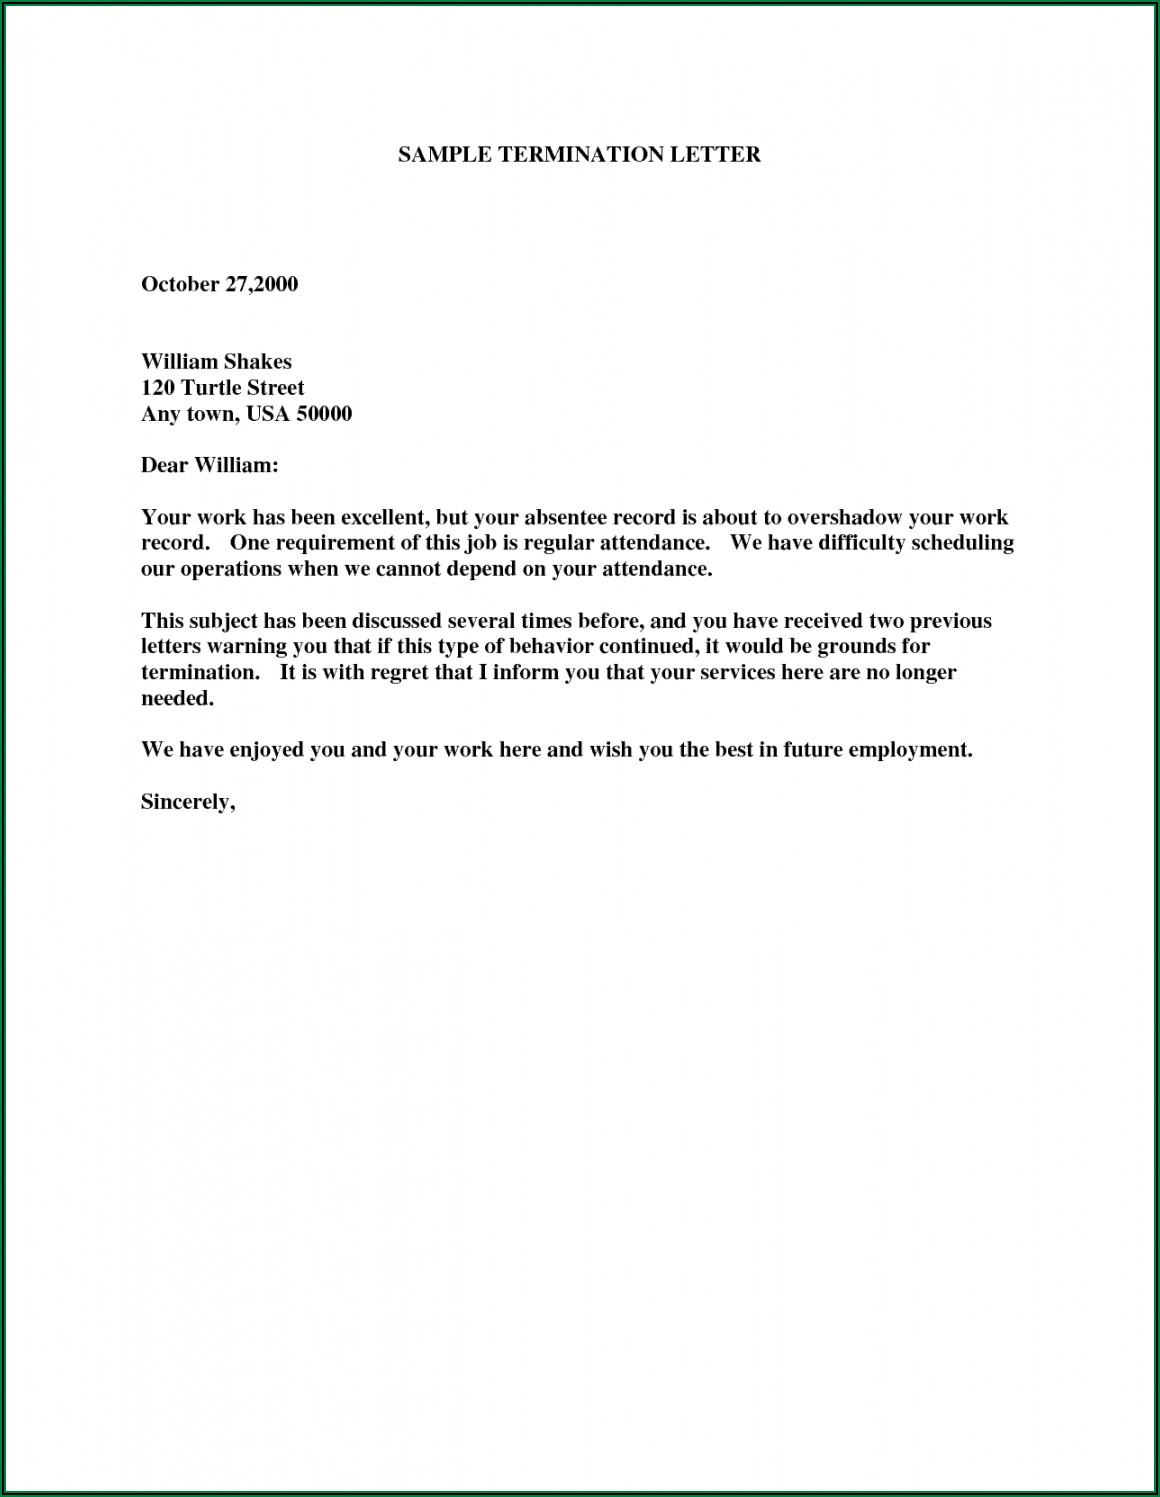 Samples Of Termination Of Employment Letters